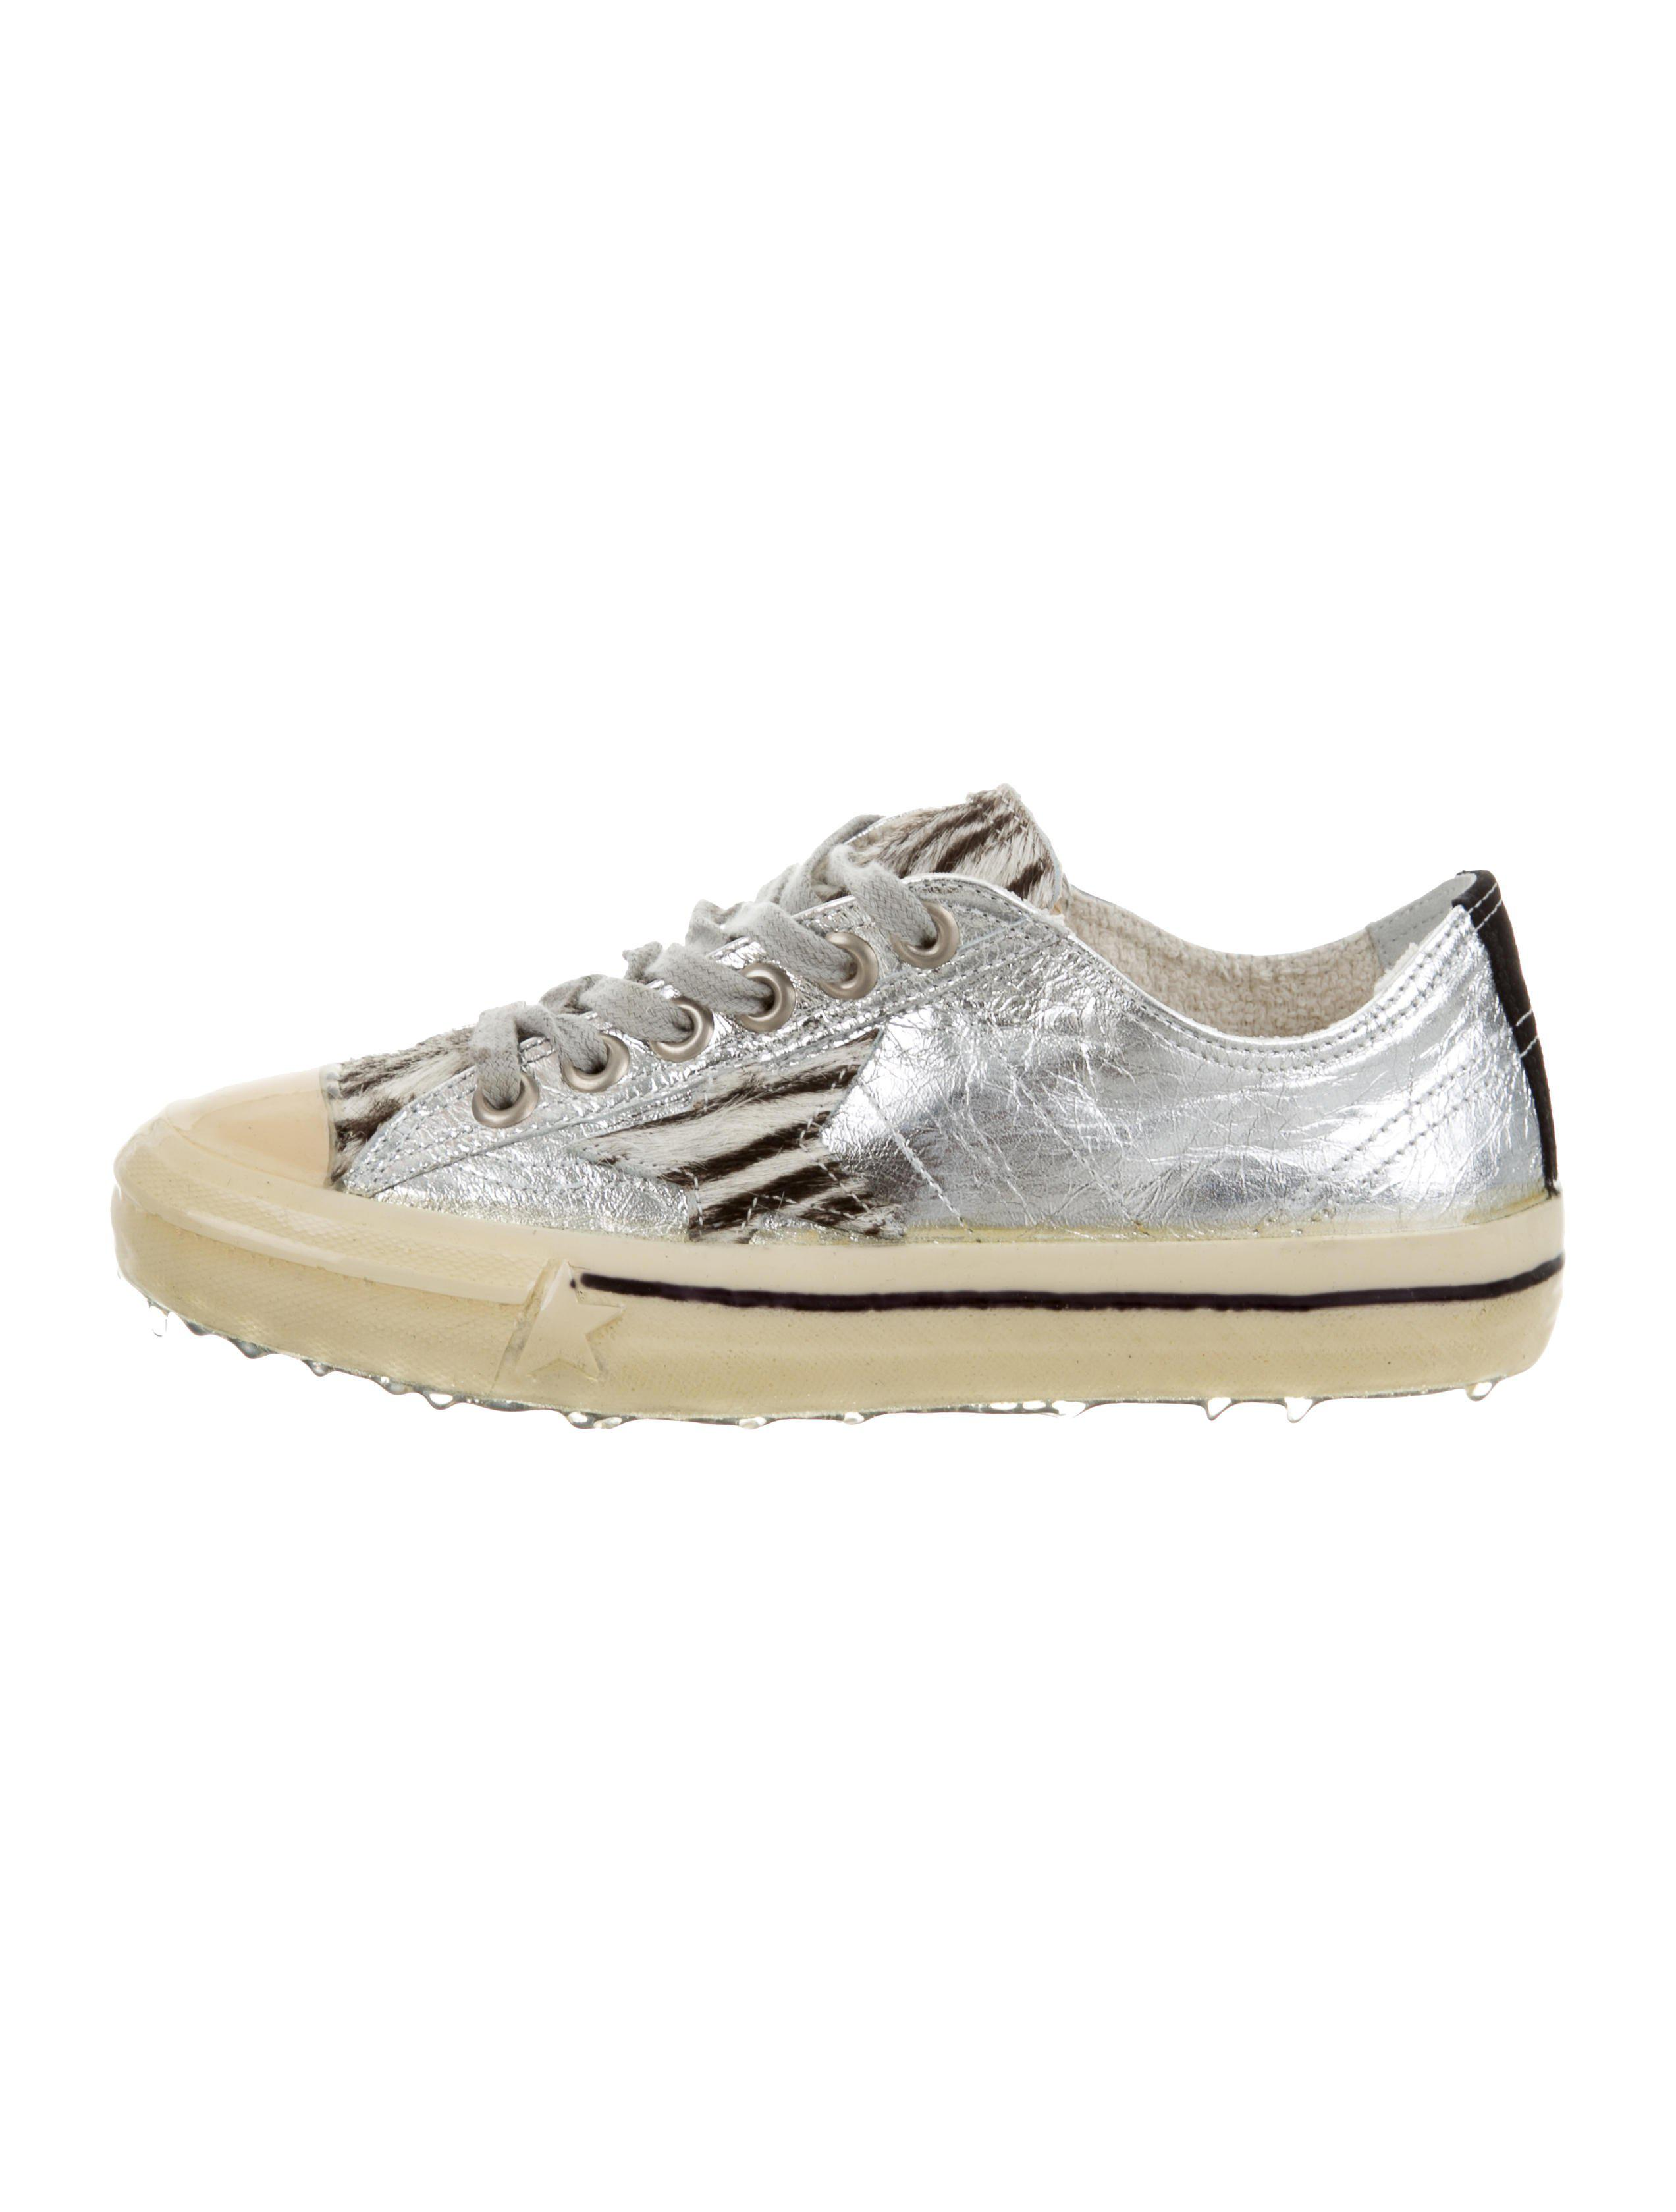 Golden Goose Running Embellished Sneakers w/ Tags outlet big discount pictures clearance collections clearance best wholesale top quality for sale i6iPfj